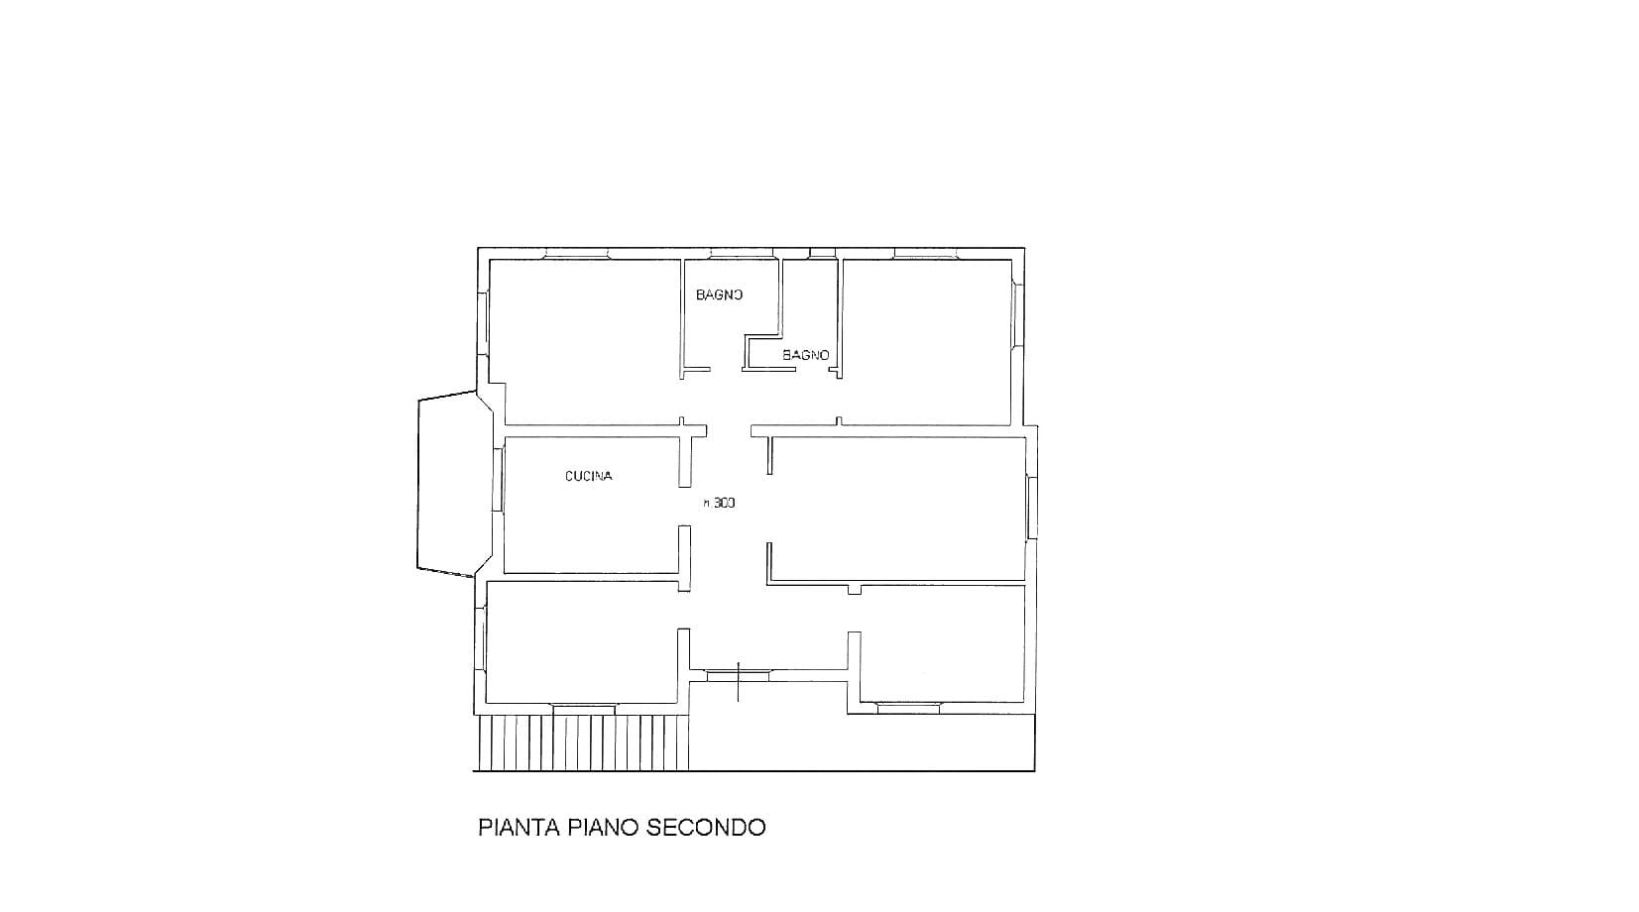 Semi-detached house for sale, ref. R/593 (Plan 1/3)